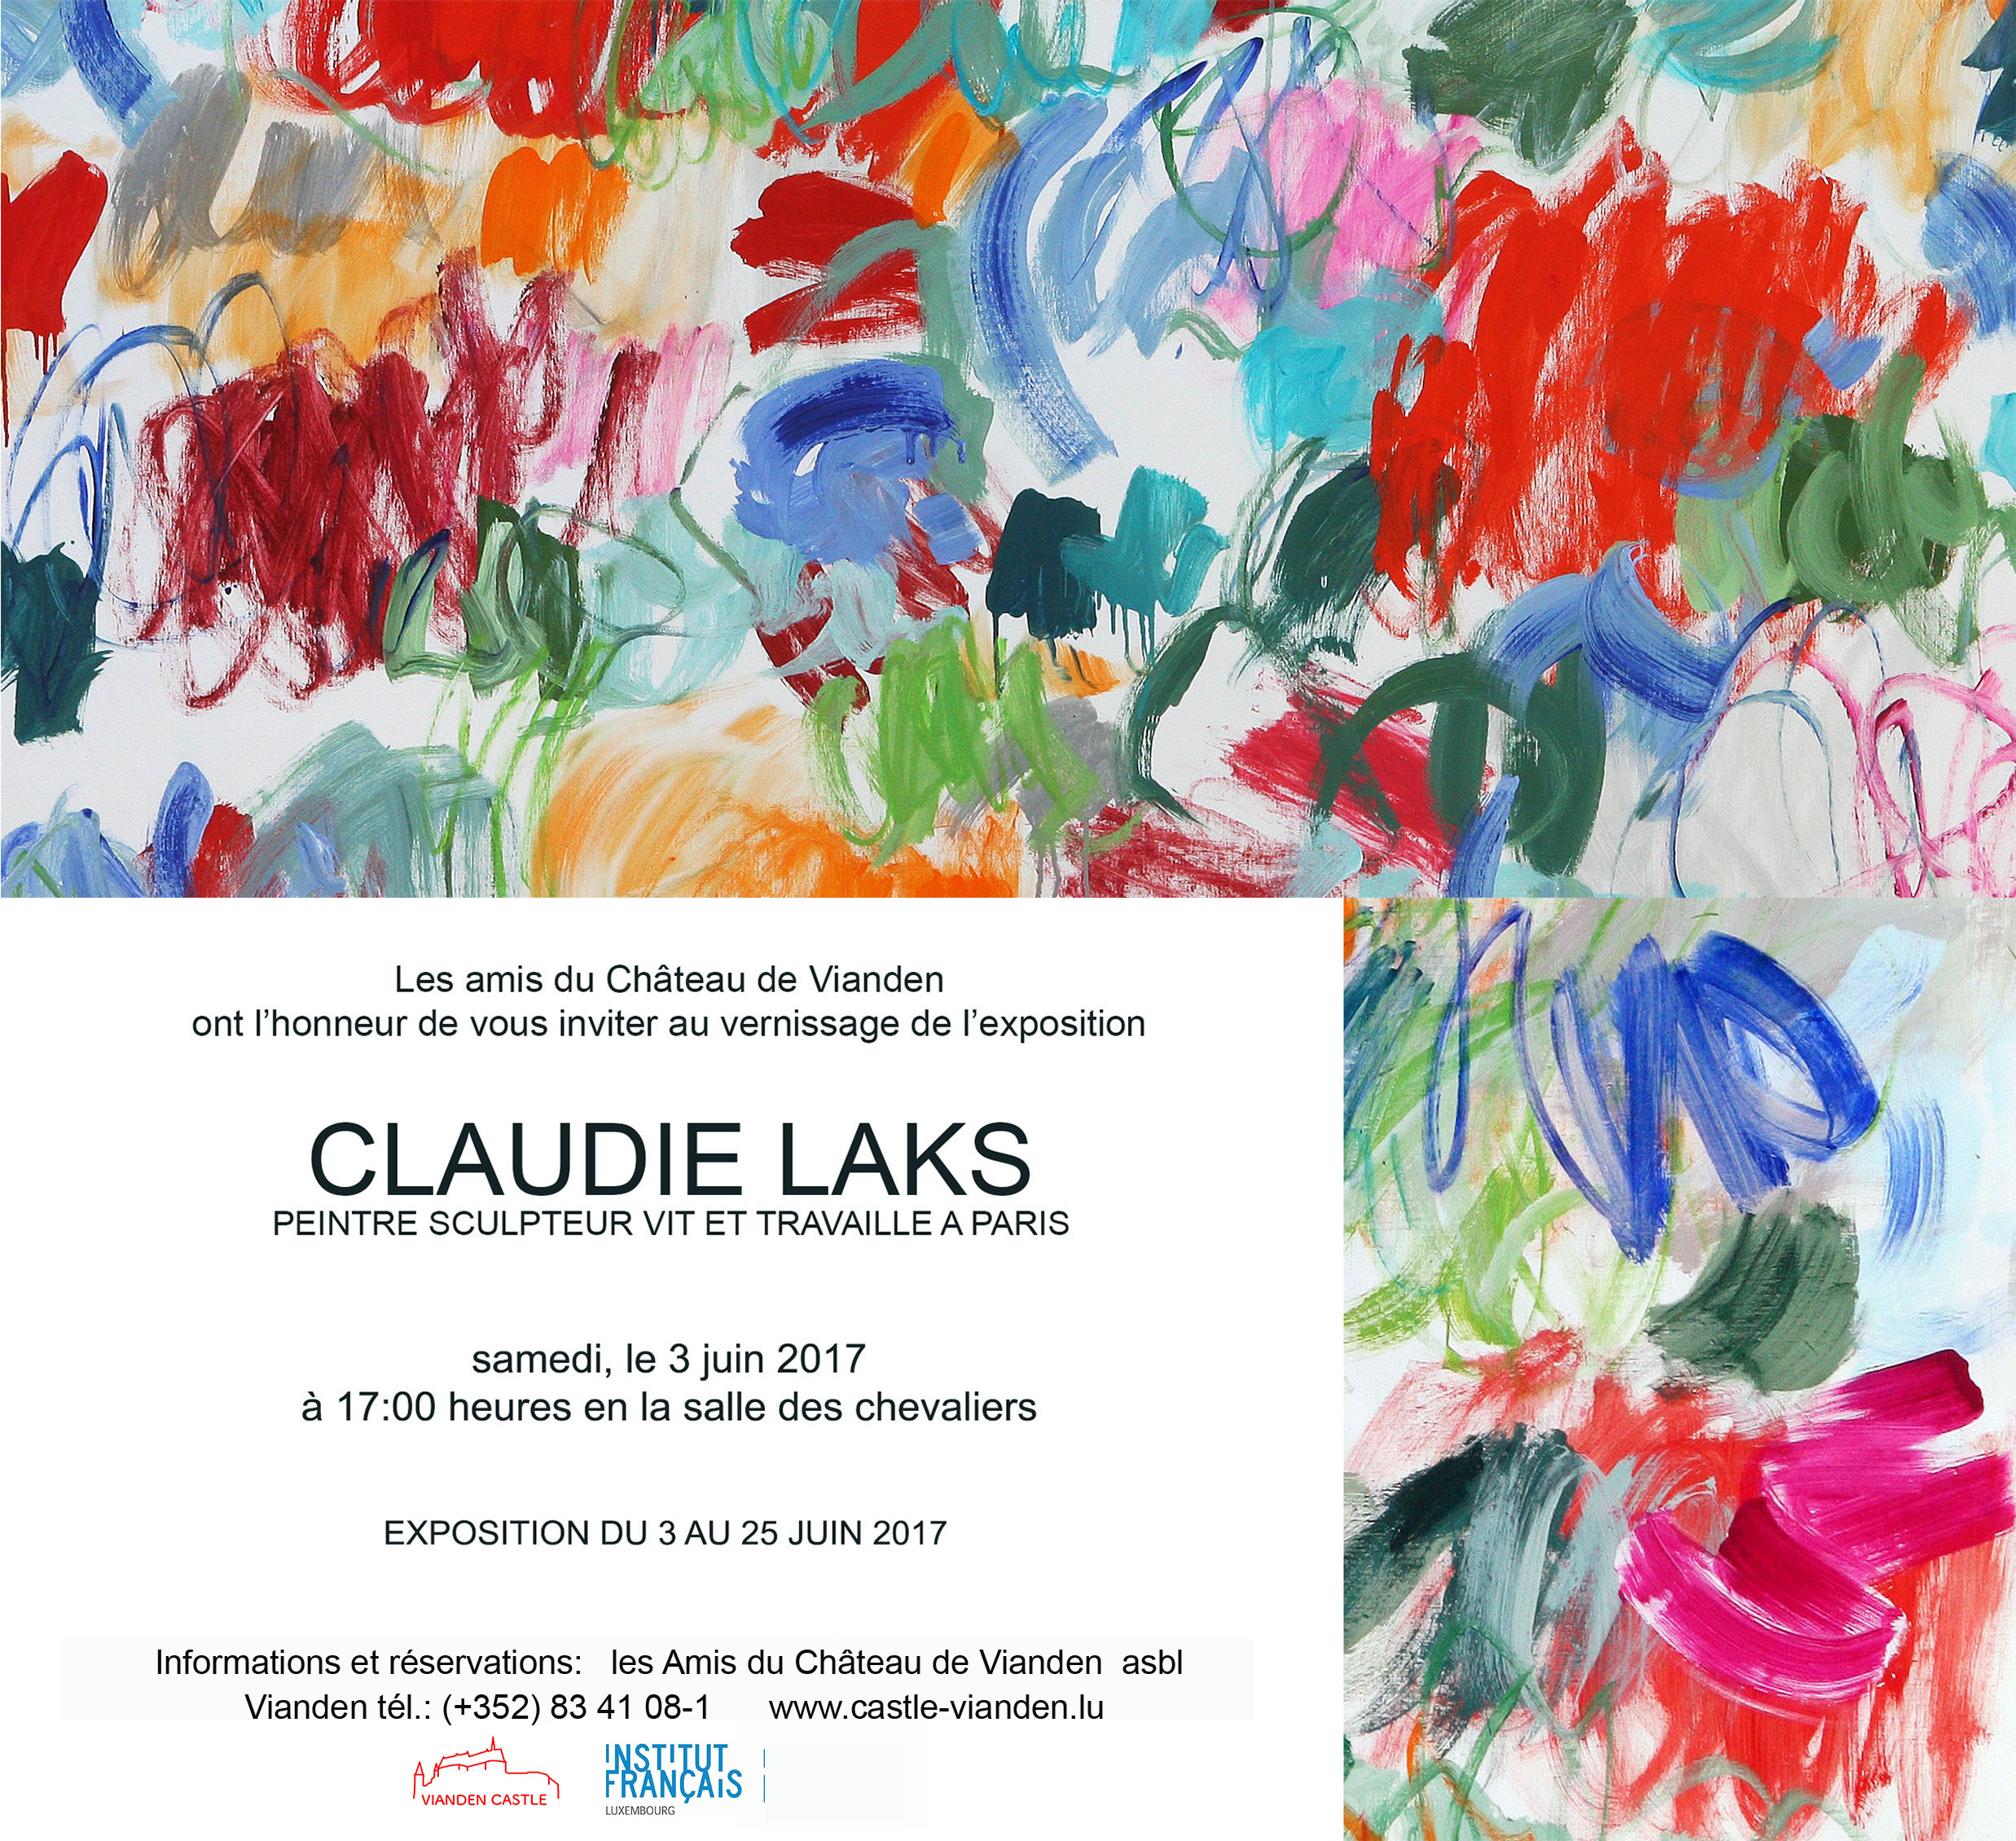 invitation exposition Claudie Laks